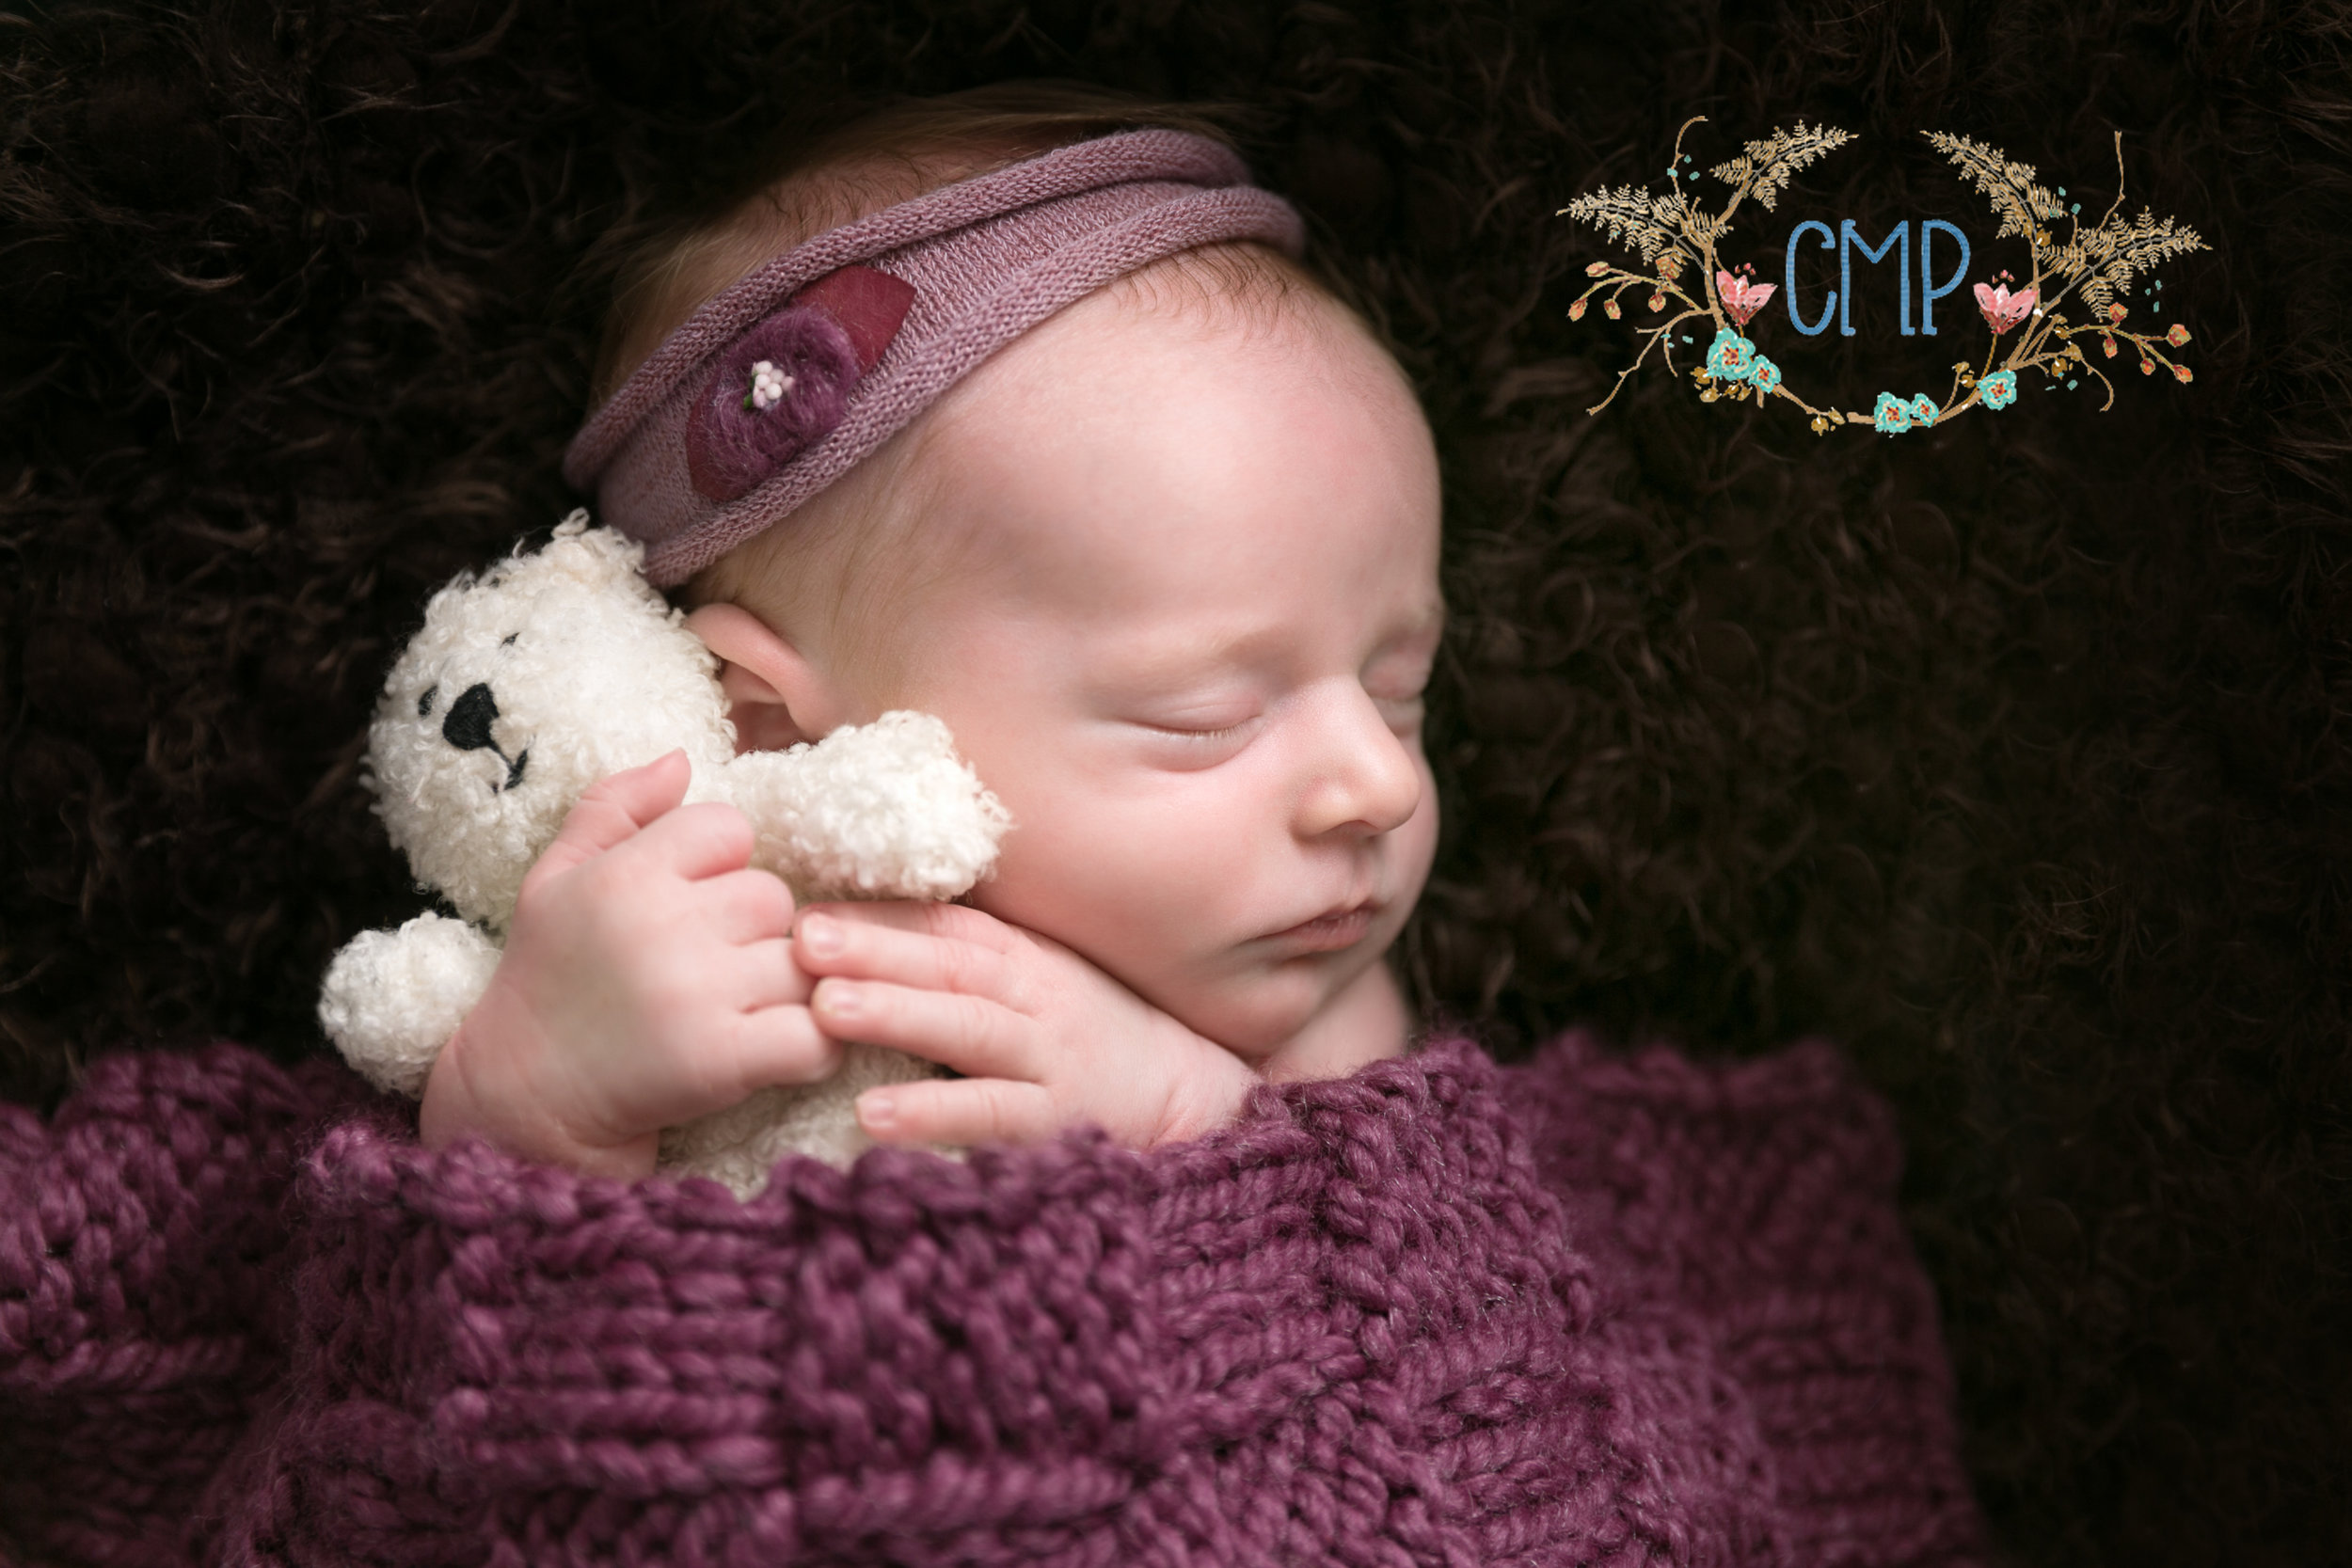 31_Shea_Raelyn_newborn-Edit.jpg